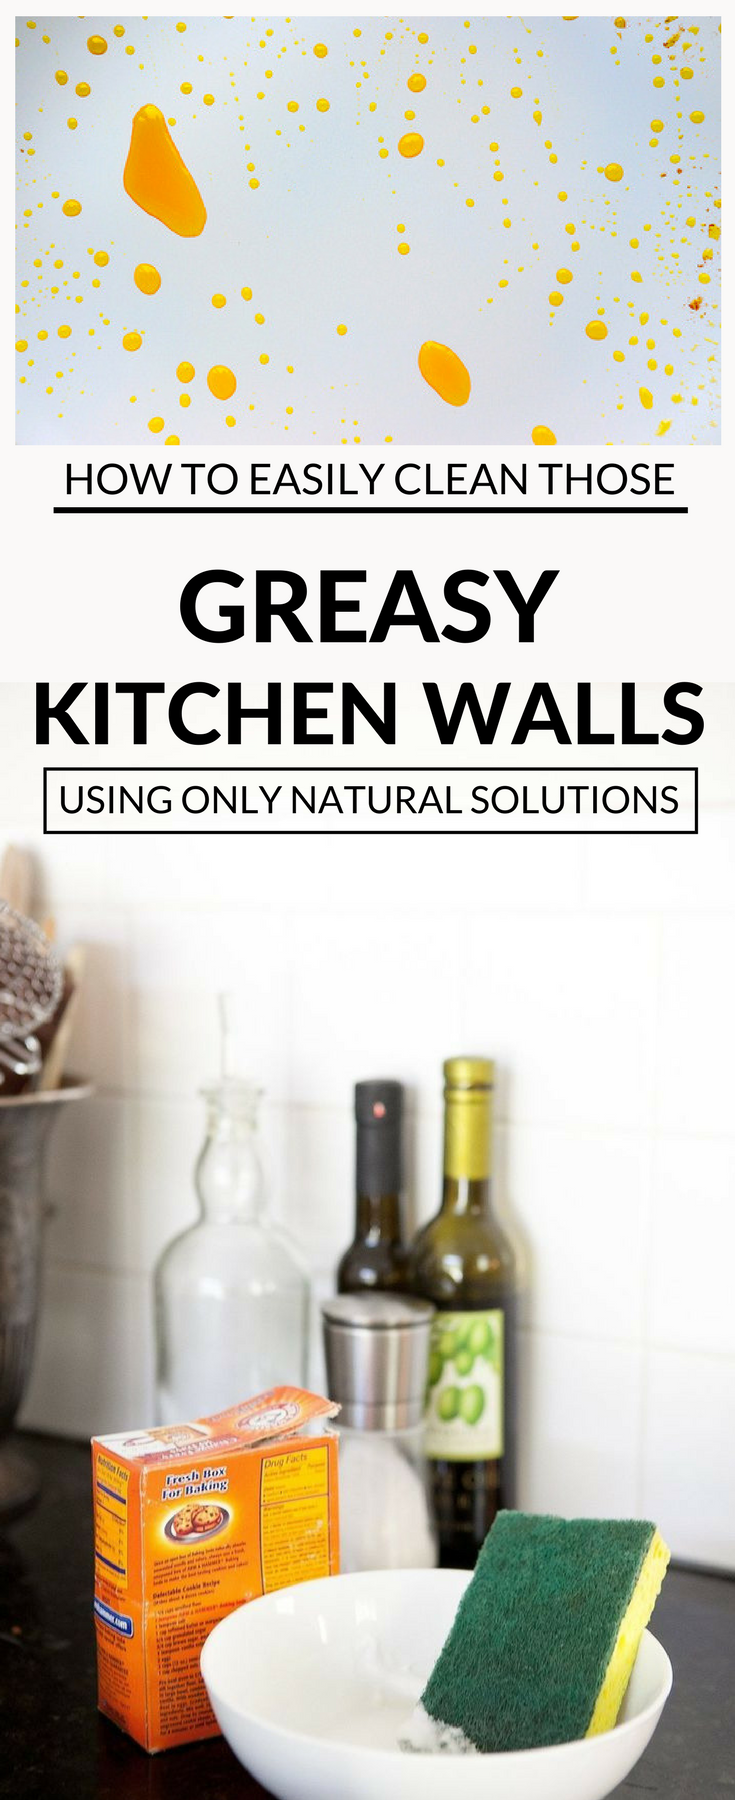 How To Easily Clean Those Greasy Kitchen Walls Using Only